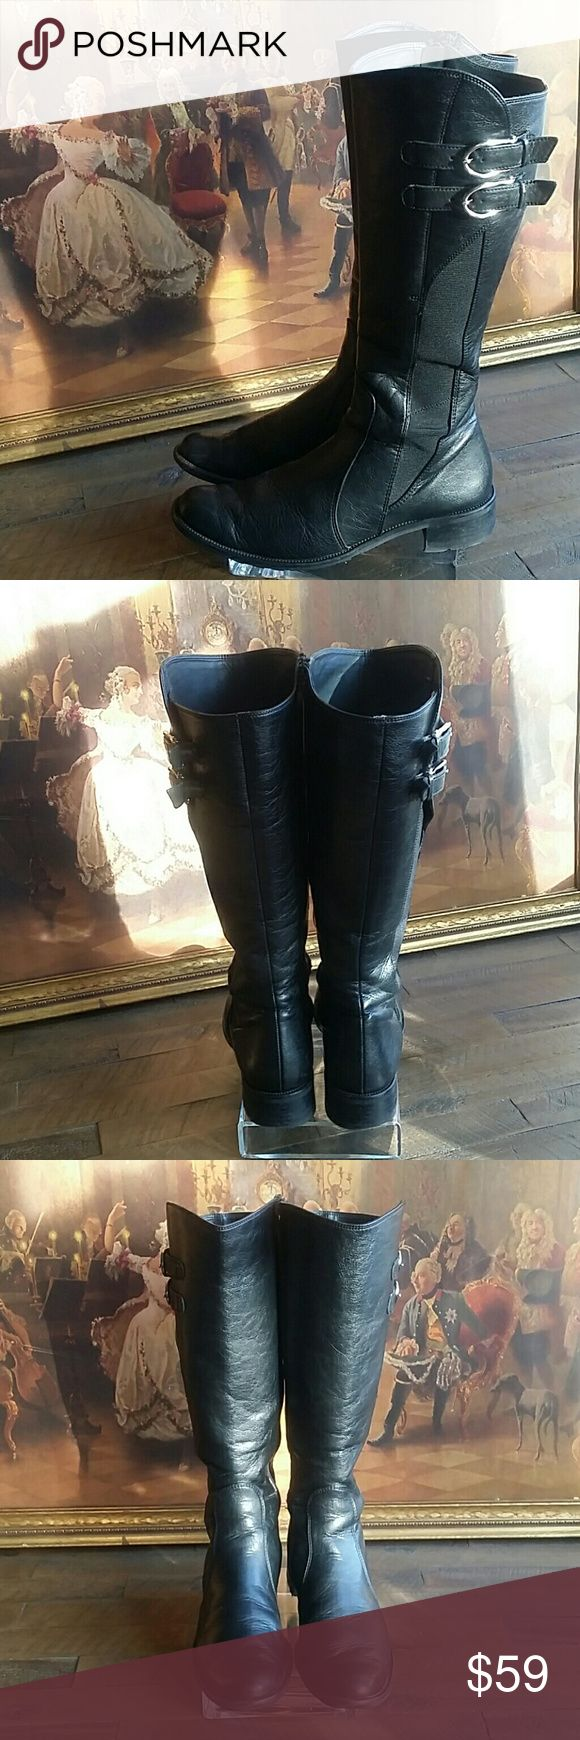 Paul Green boots Unisex Paul Green Munchen  boots. Made in Austria.  Wo's size 9.5 - Men's 6.5 Paul Green Shoes Ankle Boots & Booties